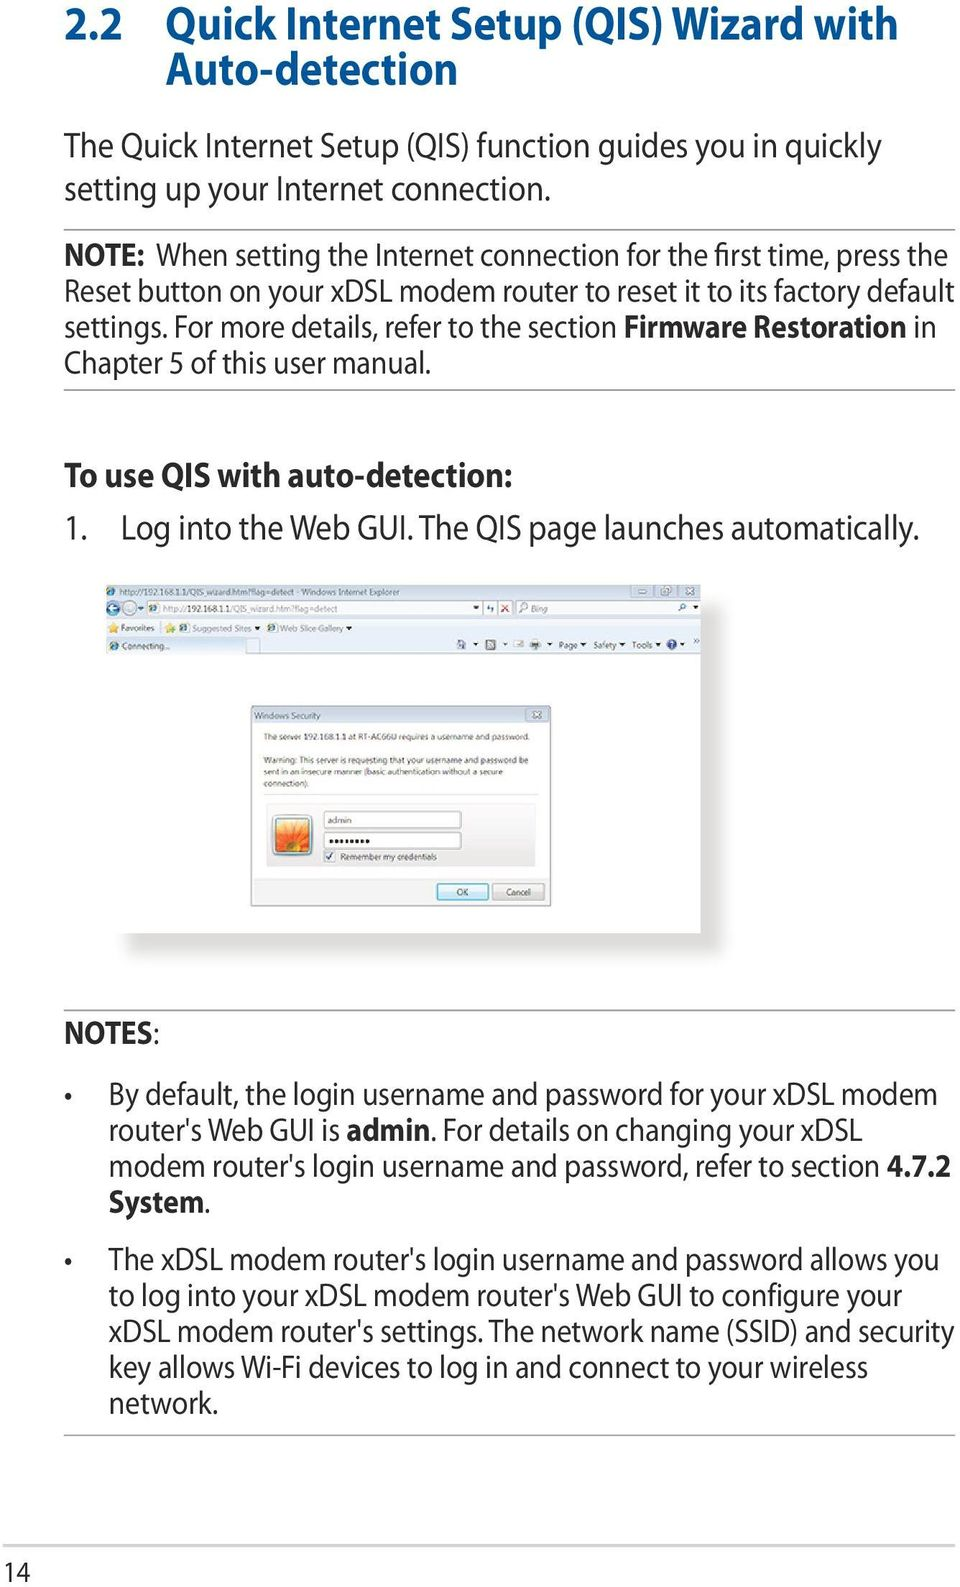 For more details, refer to the section Firmware Restoration in Chapter 5 of this user manual. To use QIS with auto-detection: 1. Log into the Web GUI. The QIS page launches automatically.